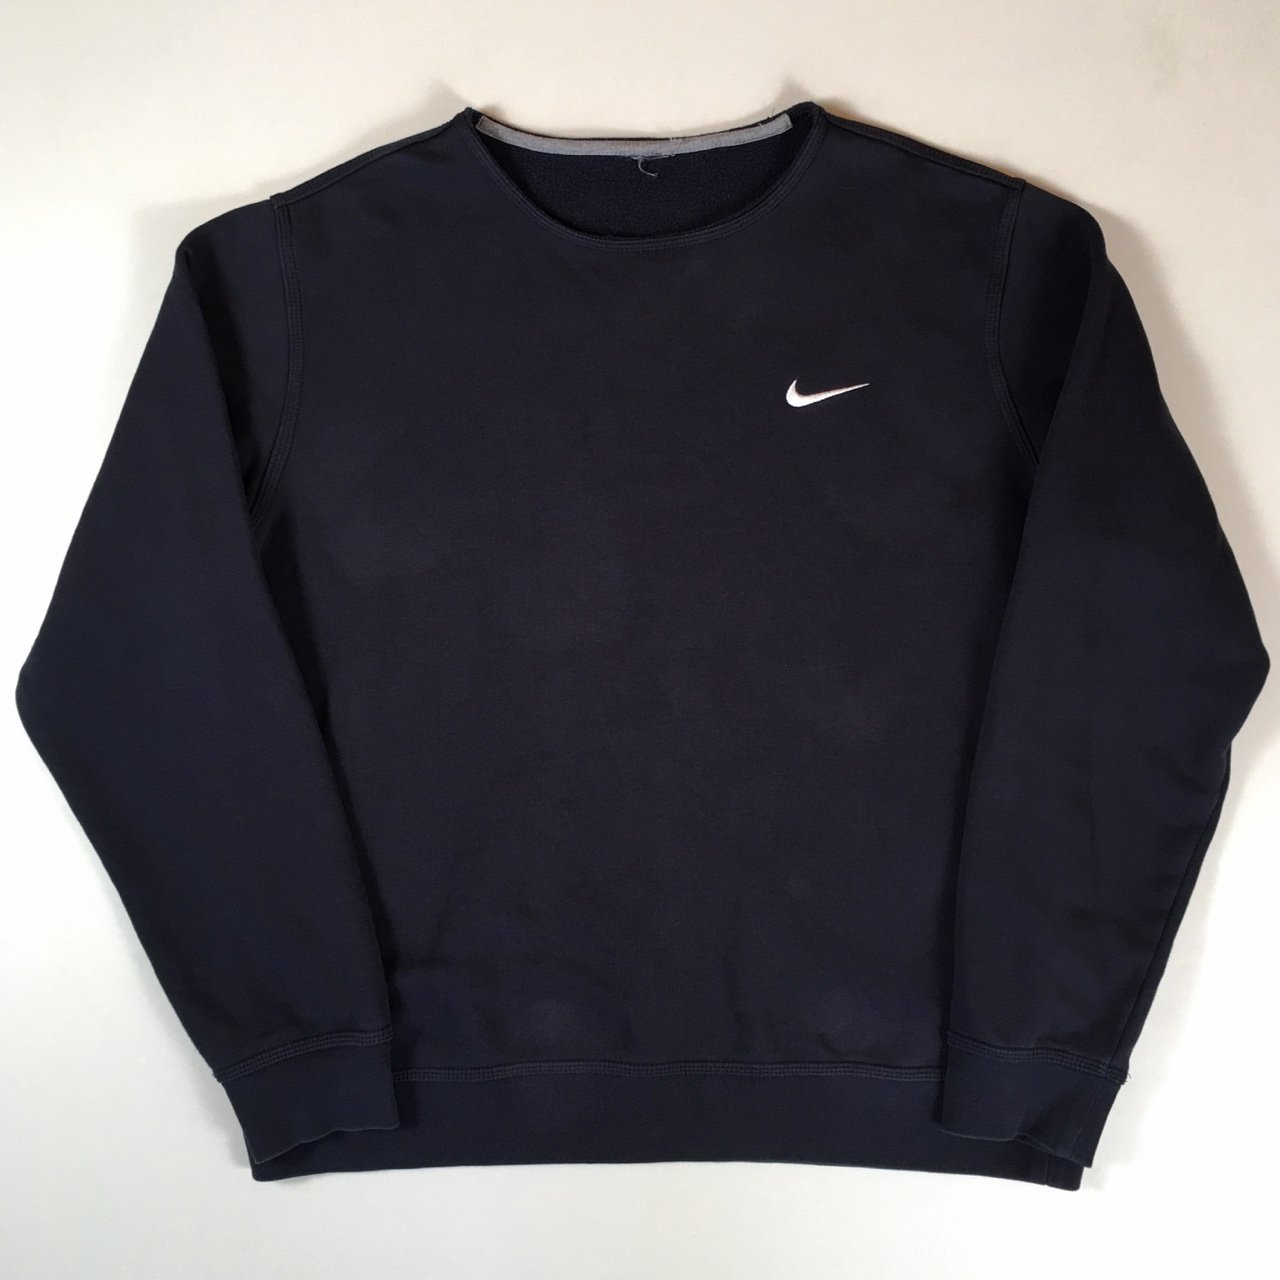 Nike Fits Large True Sweatshirt To Vintage Men's Size Depop Buy xUnwAR